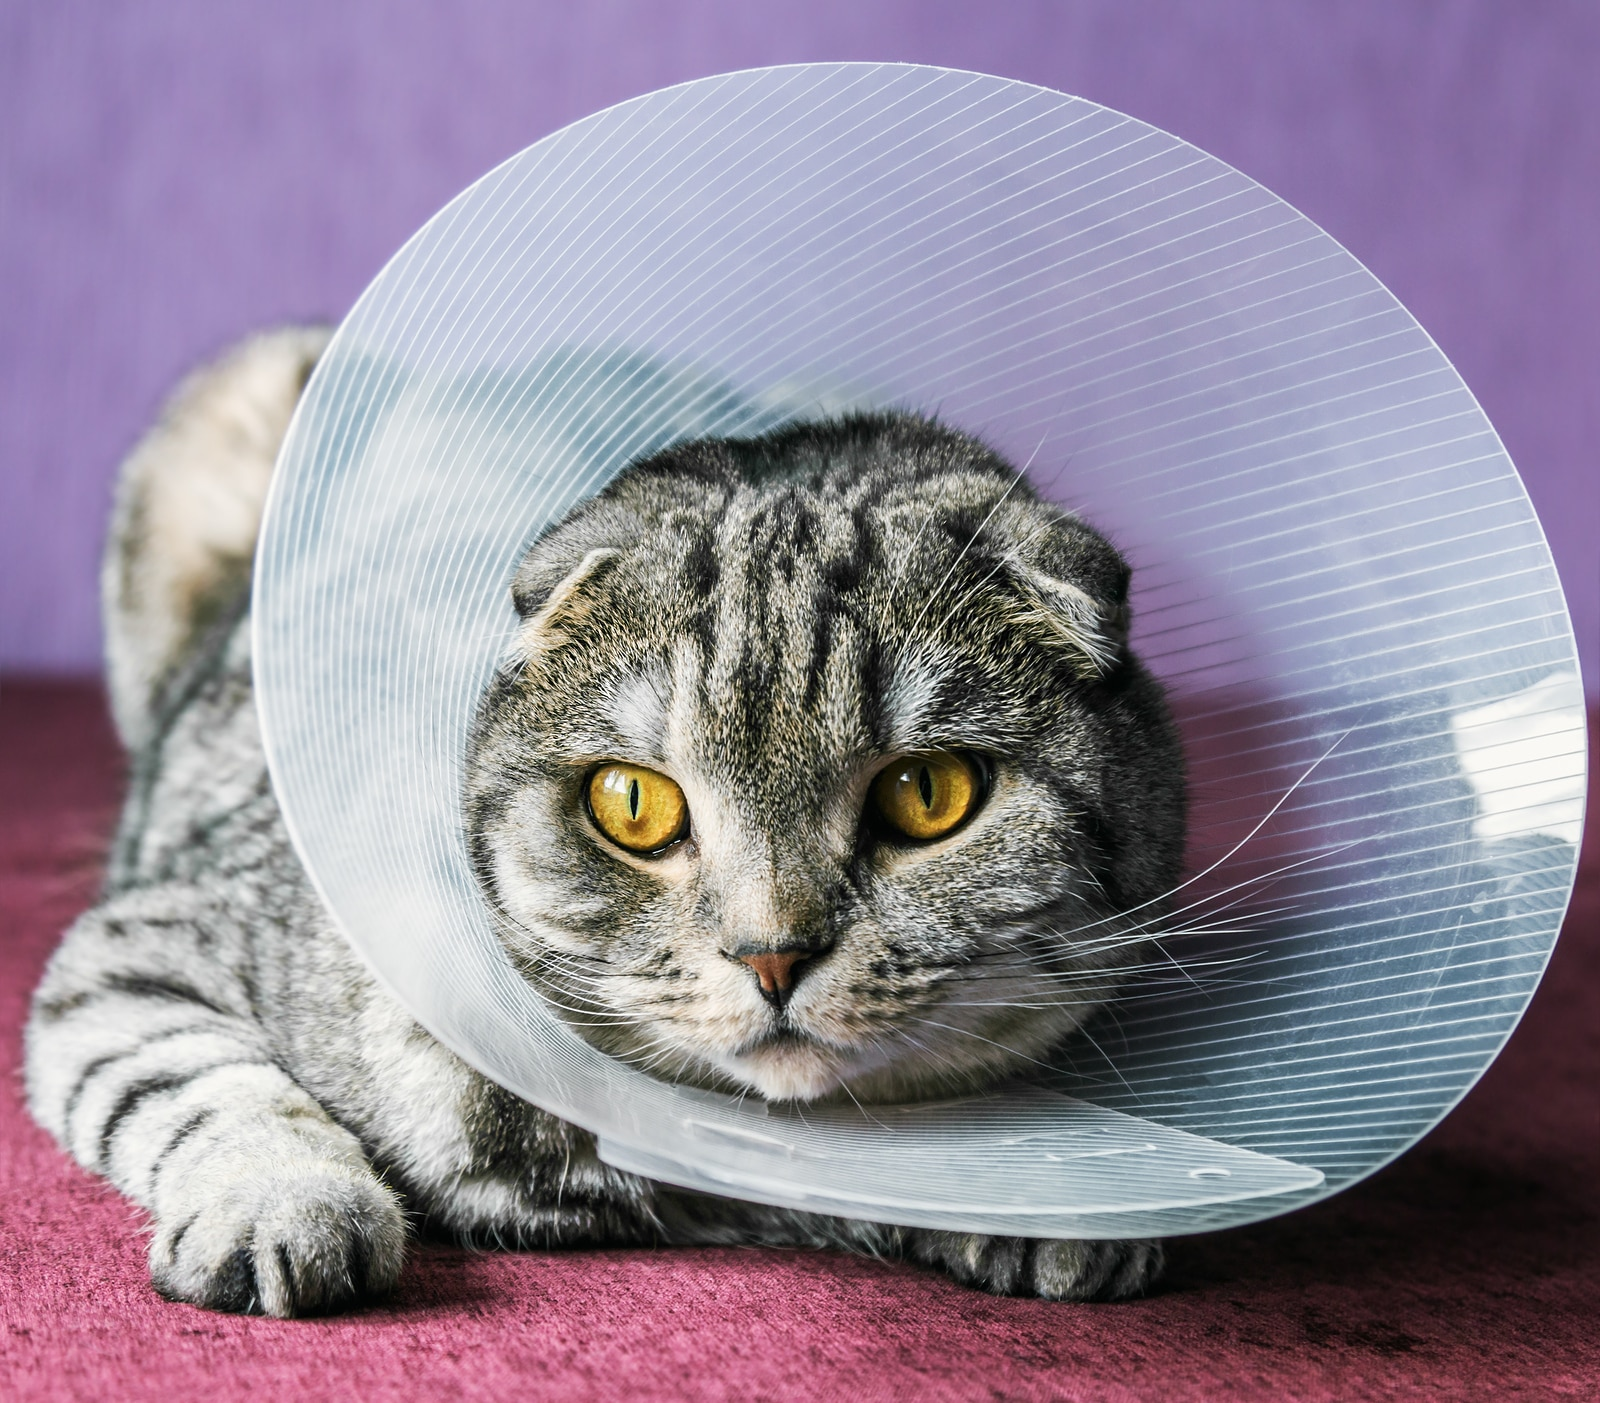 Scottish fold cat in a plastic protective cone